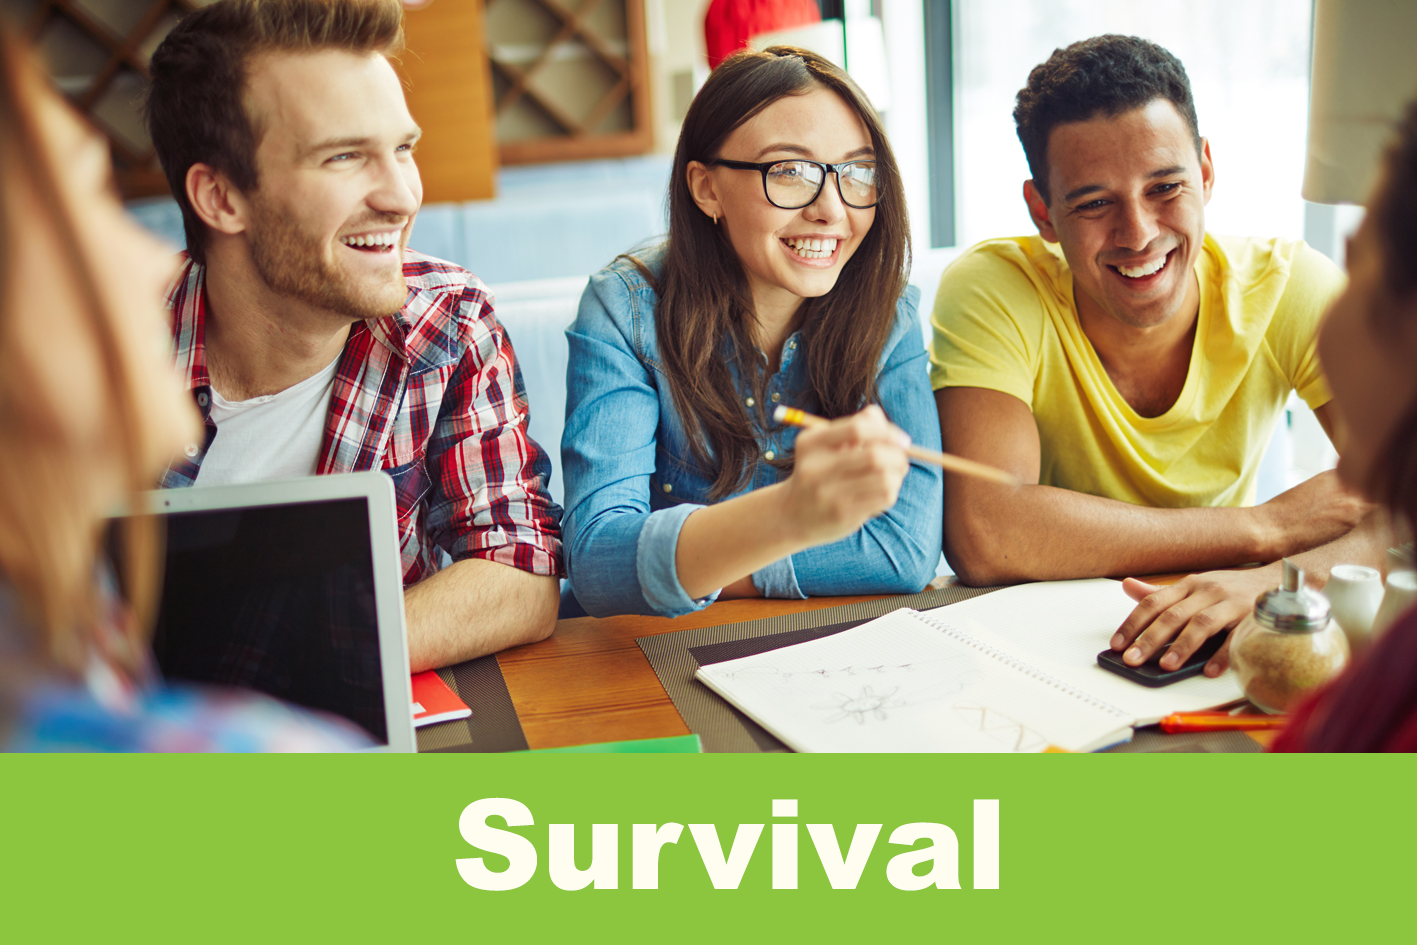 Survival One Week Intensive / 15 - 19 March 2021